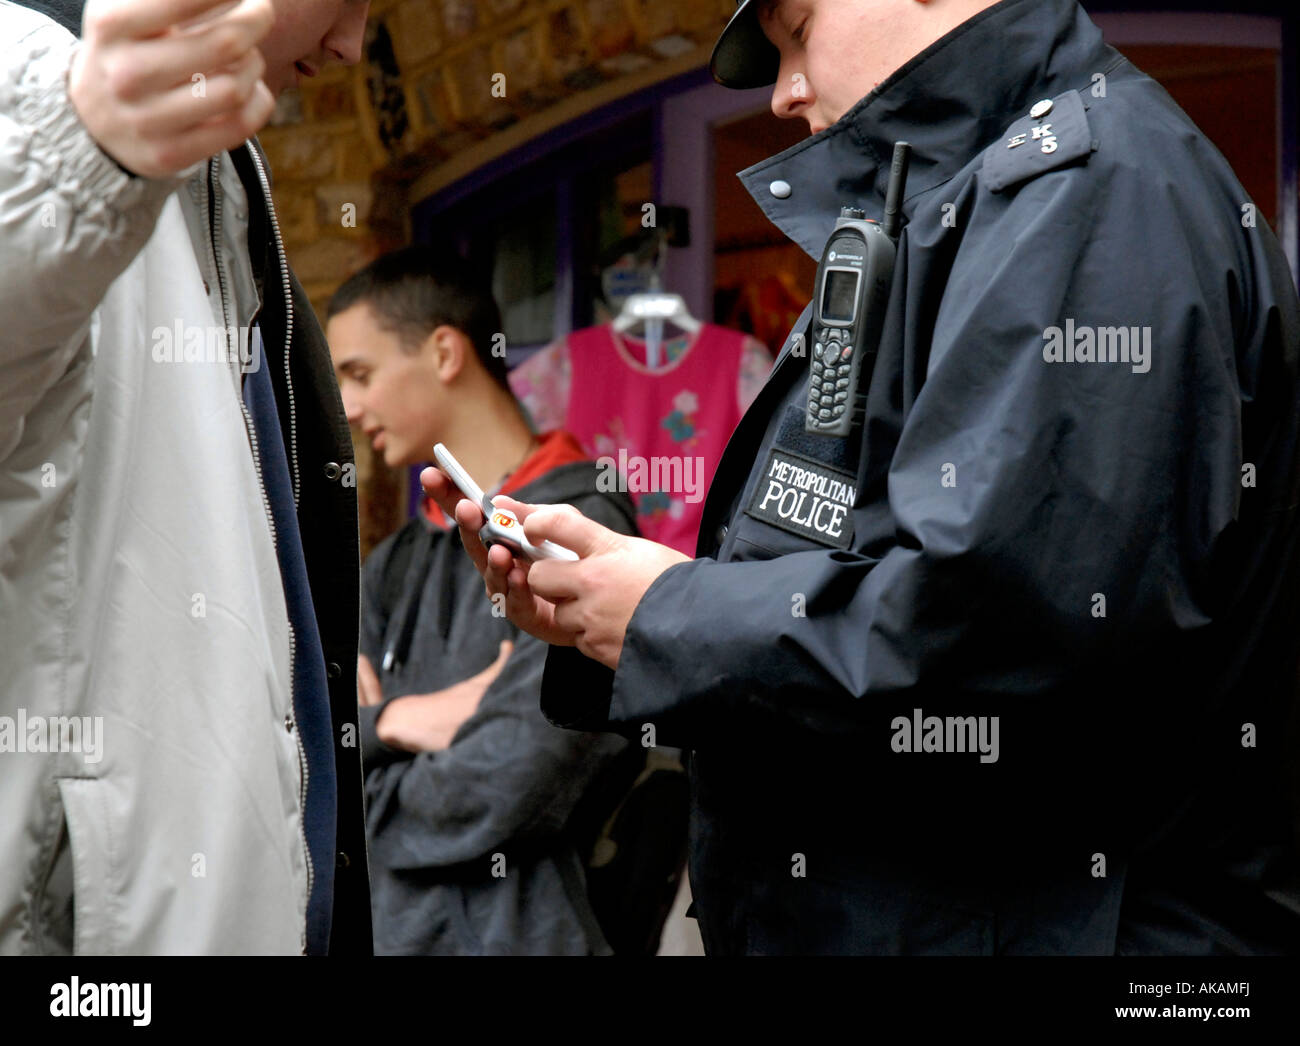 police officer stop and search youth. - Stock Image